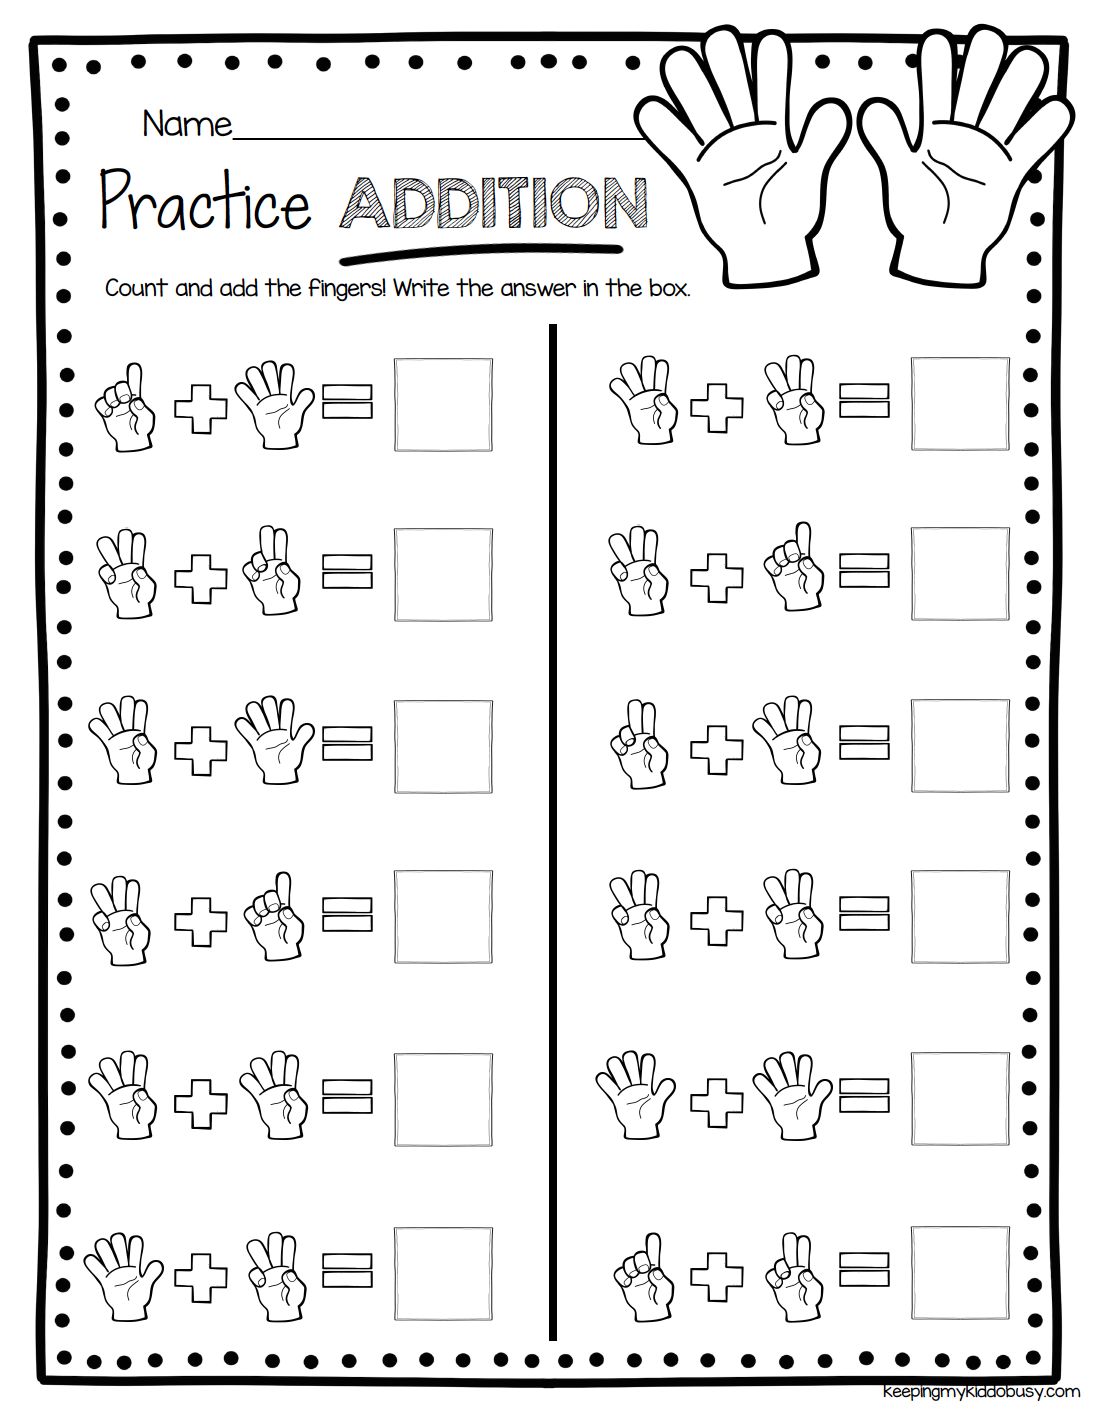 ADDITION - kindergarten worksheets to practice addition - equat…    Kindergarten math worksheets addition [ 1416 x 1098 Pixel ]